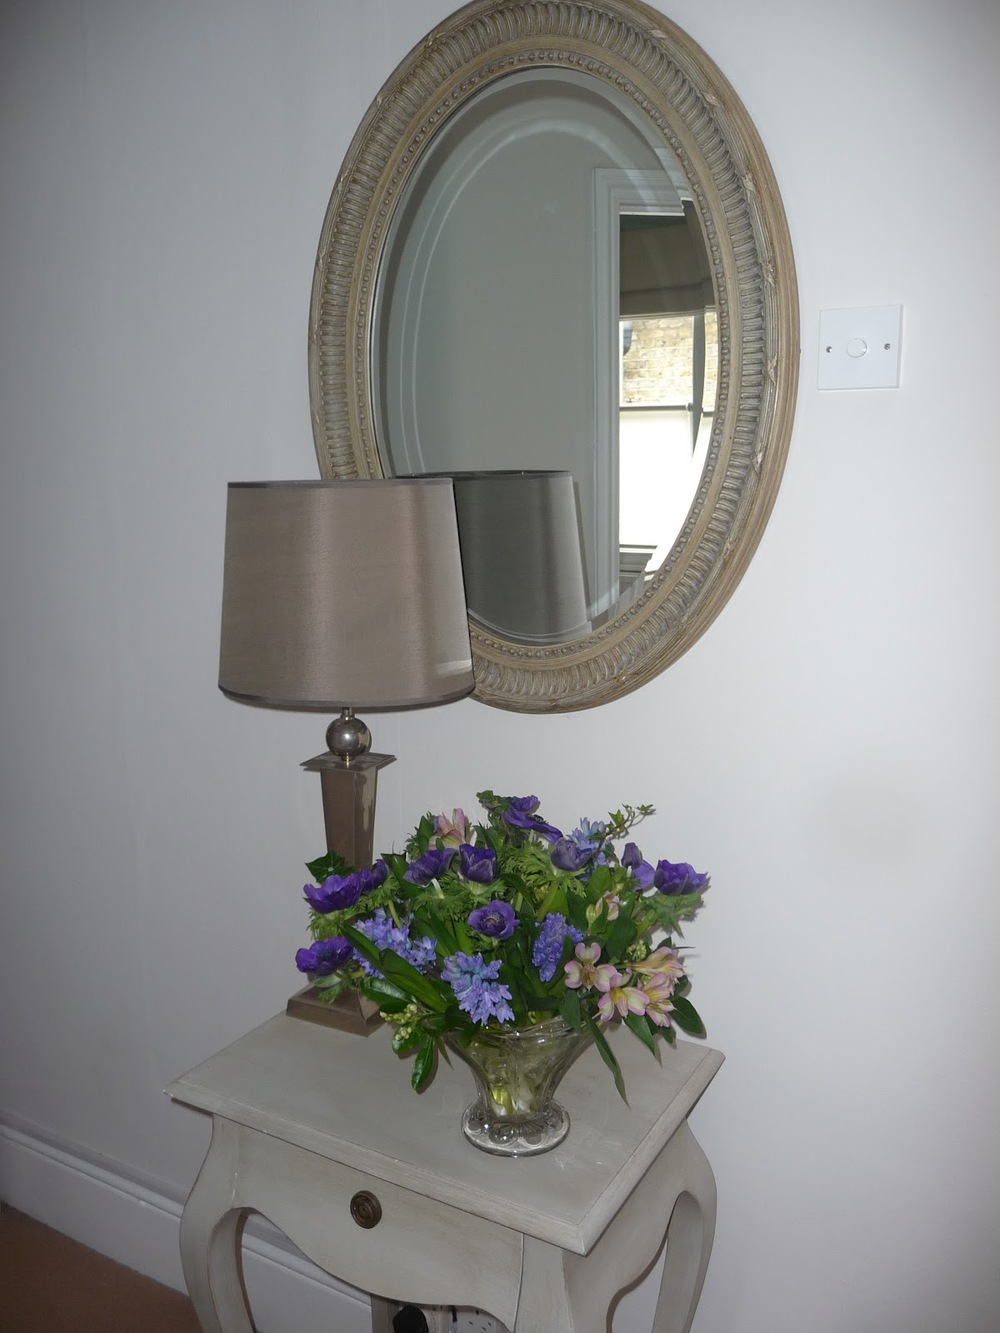 This mirror is made from bamboo and sits in the hall. I have created a focal point with the table, light and flowers